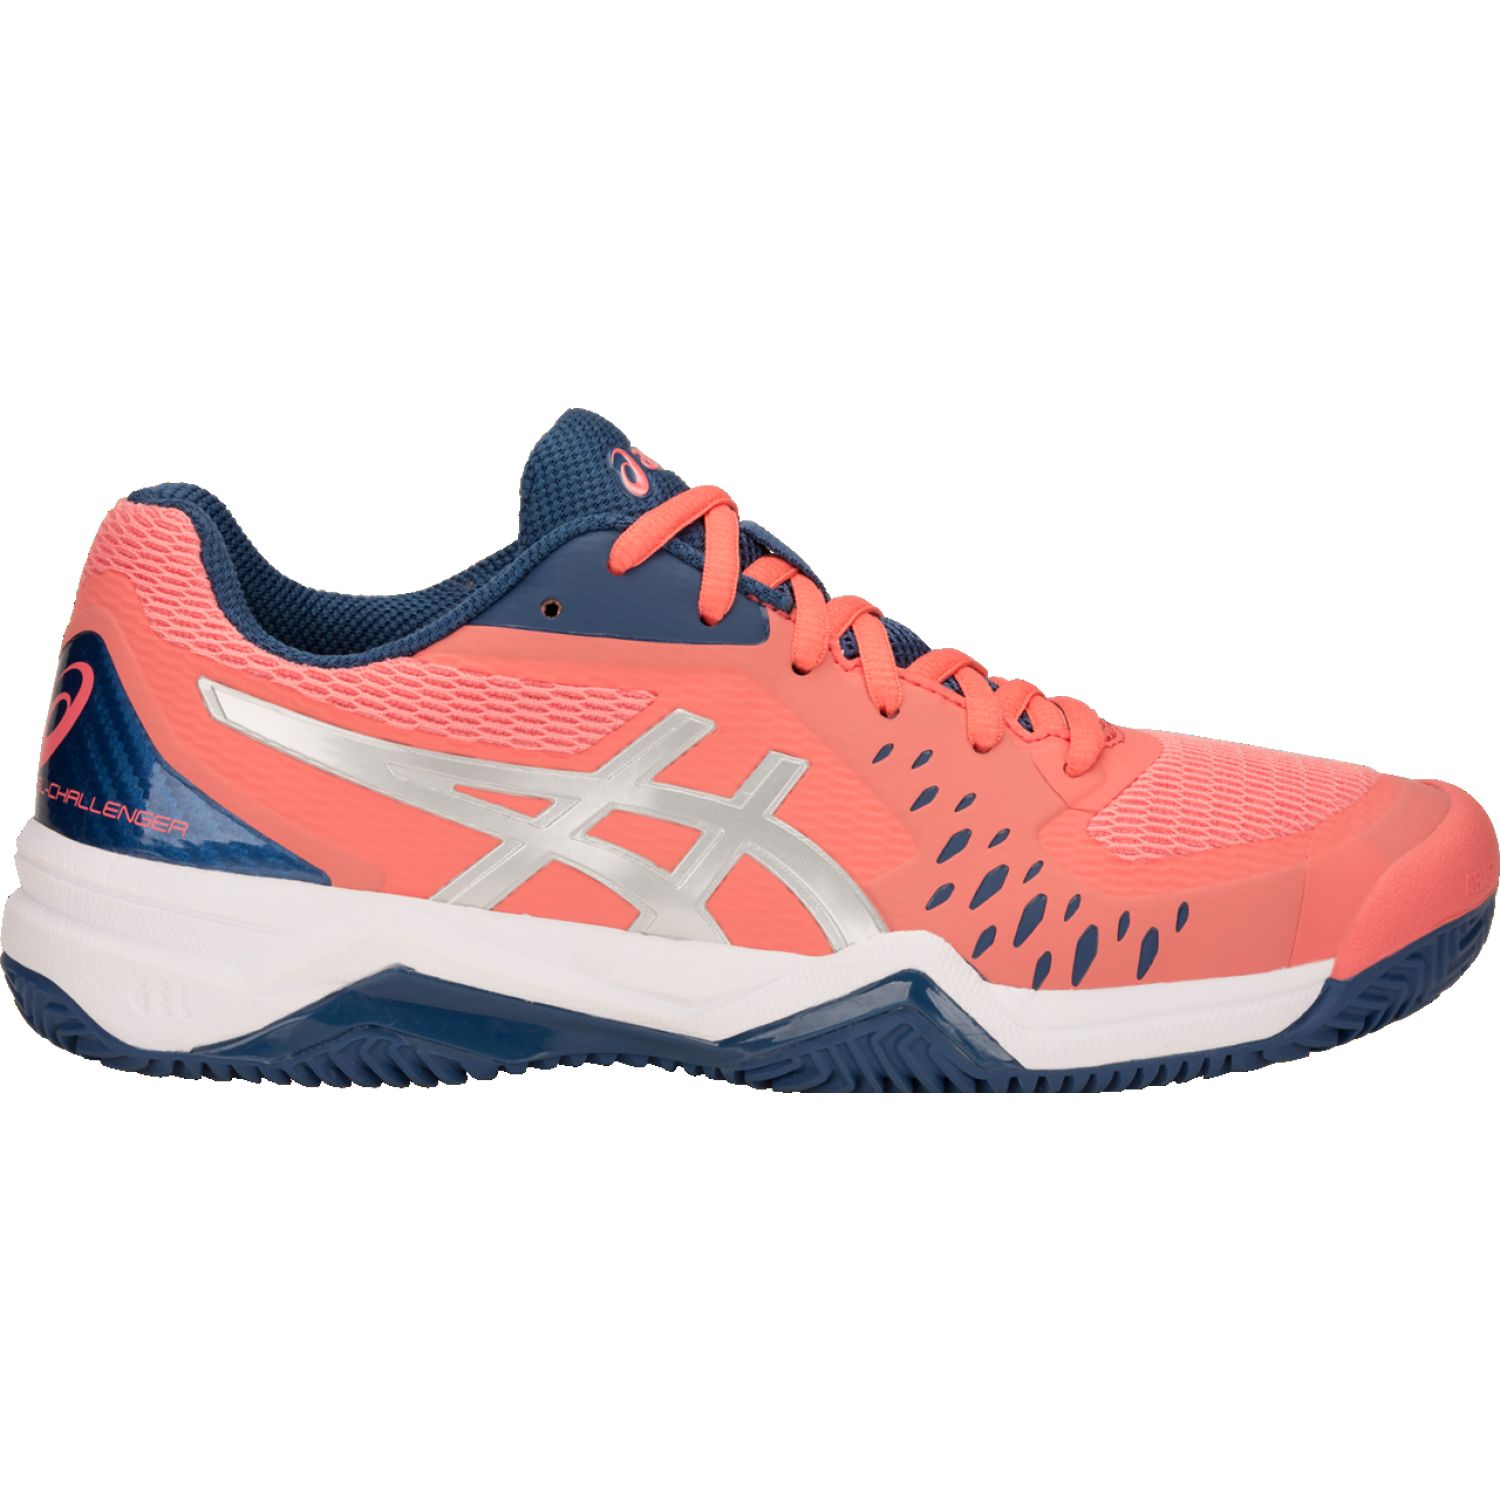 Asics Gel-Challenger 12 Coral / azul Mujeres